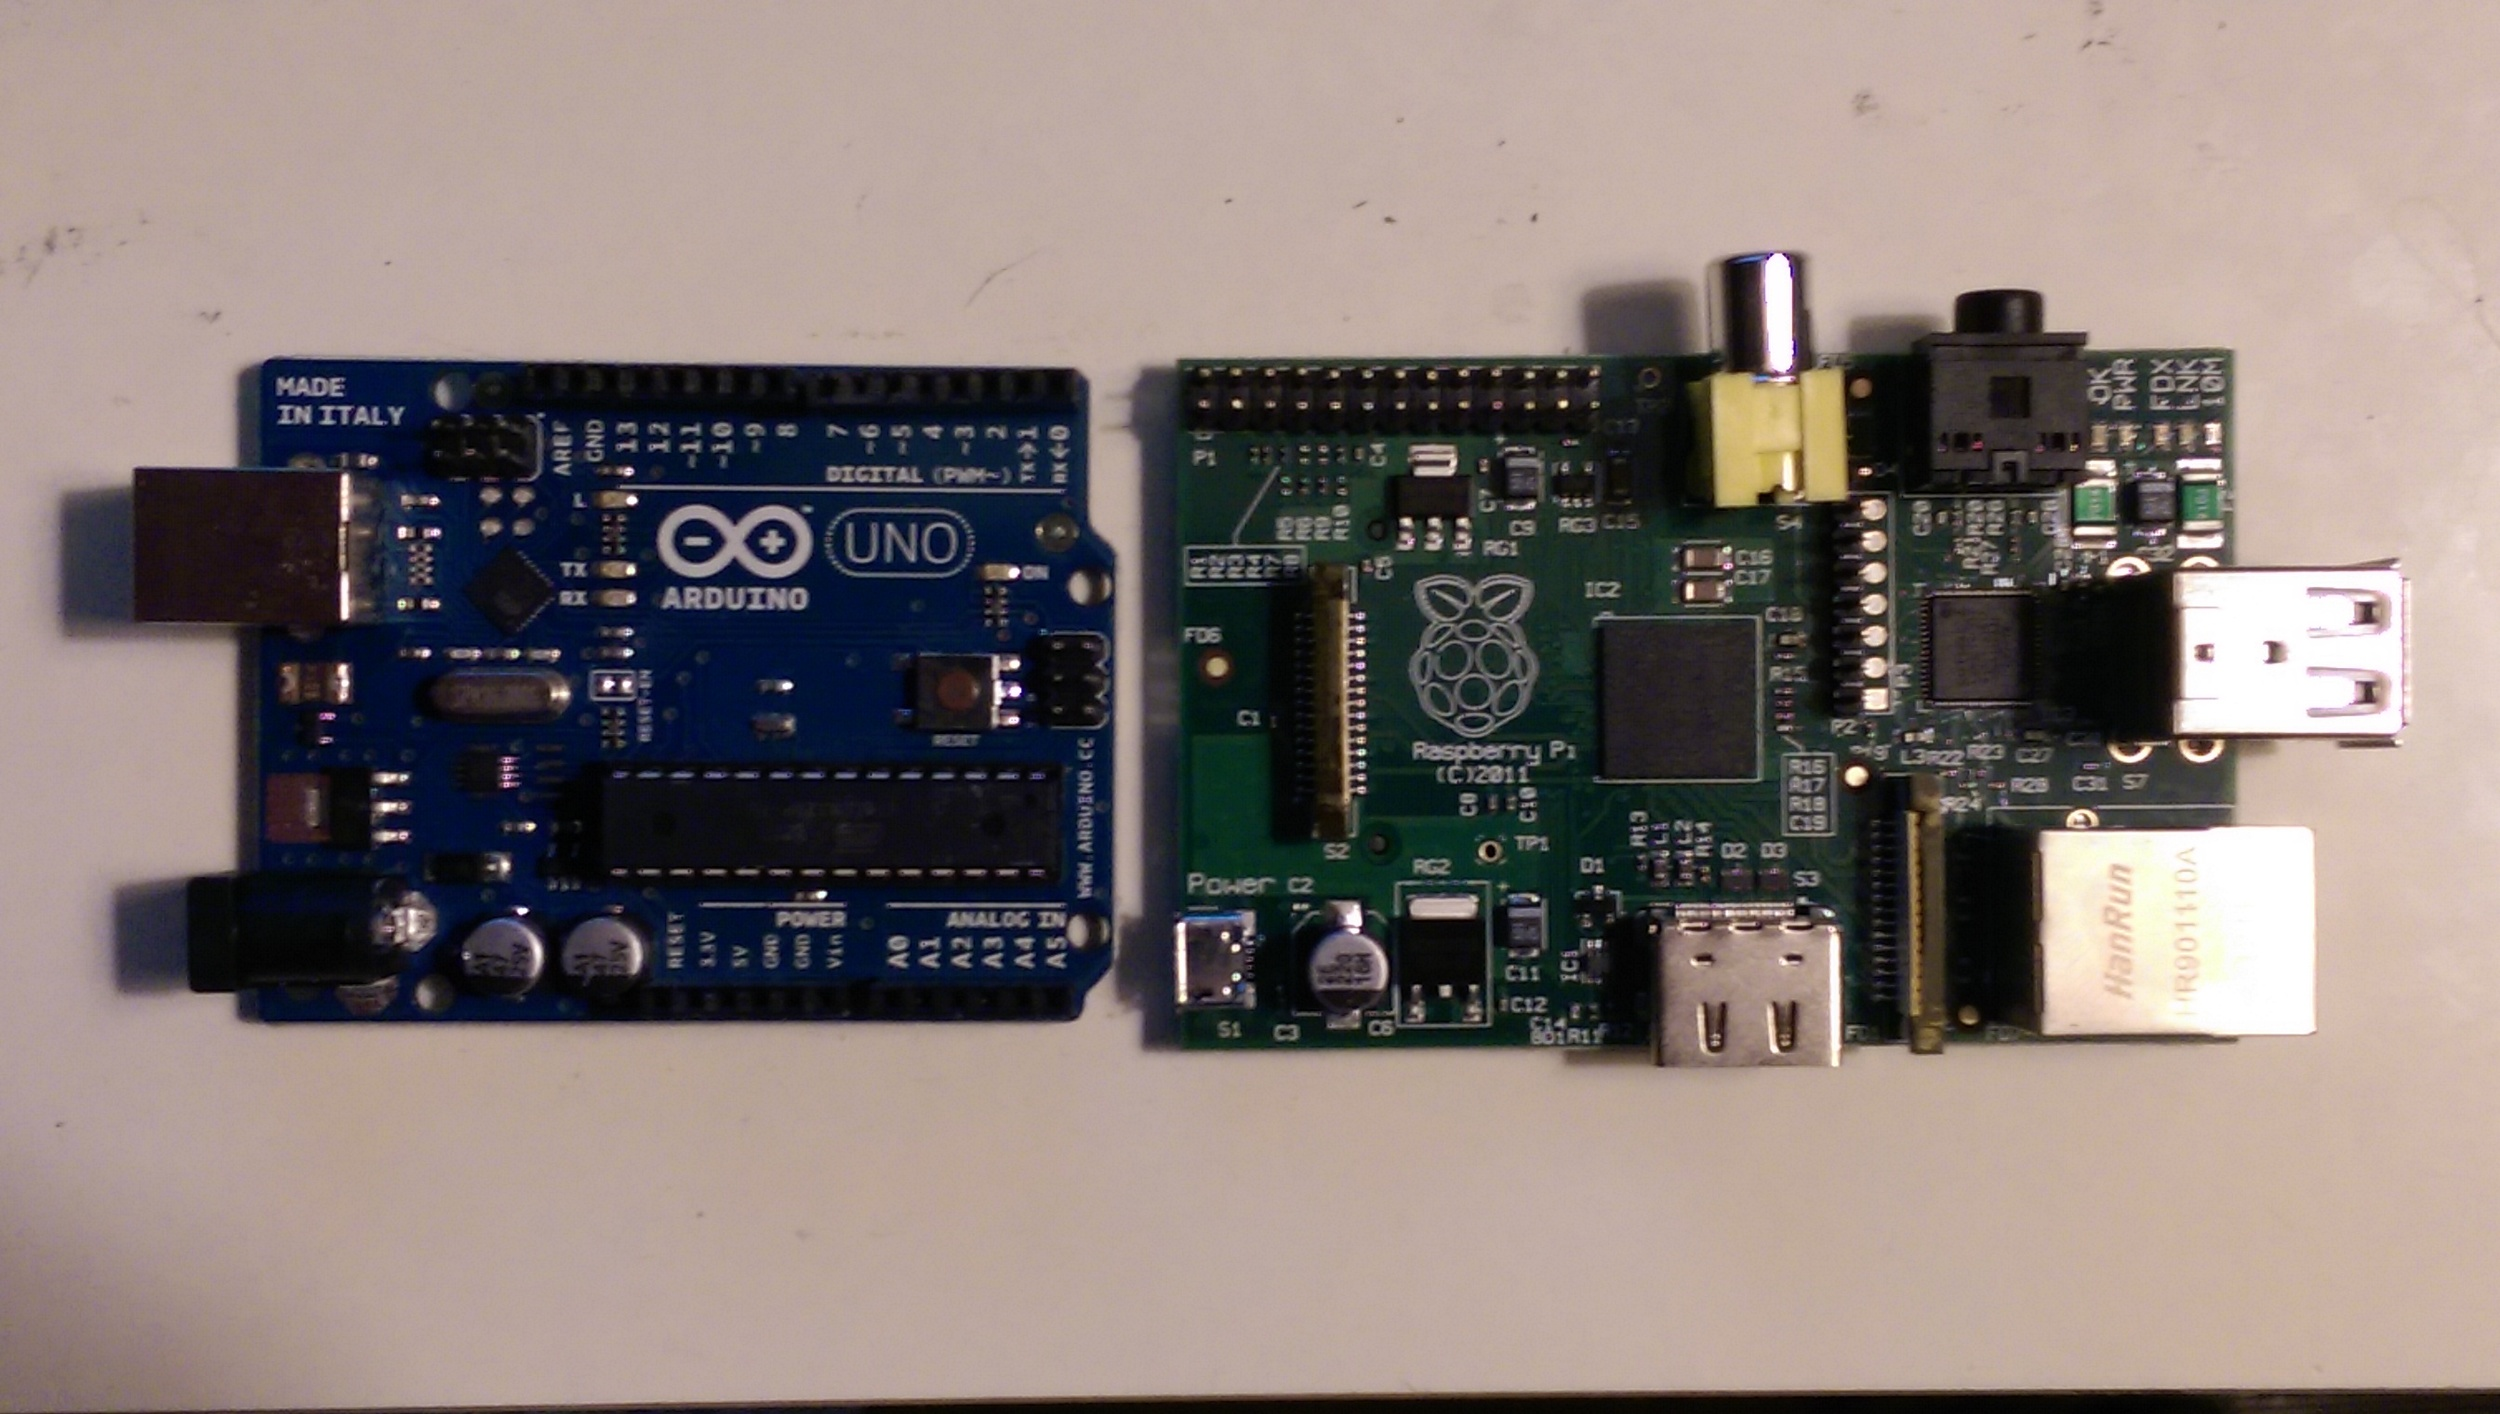 Arduino Uno on the left and Raspberry Pi on the right